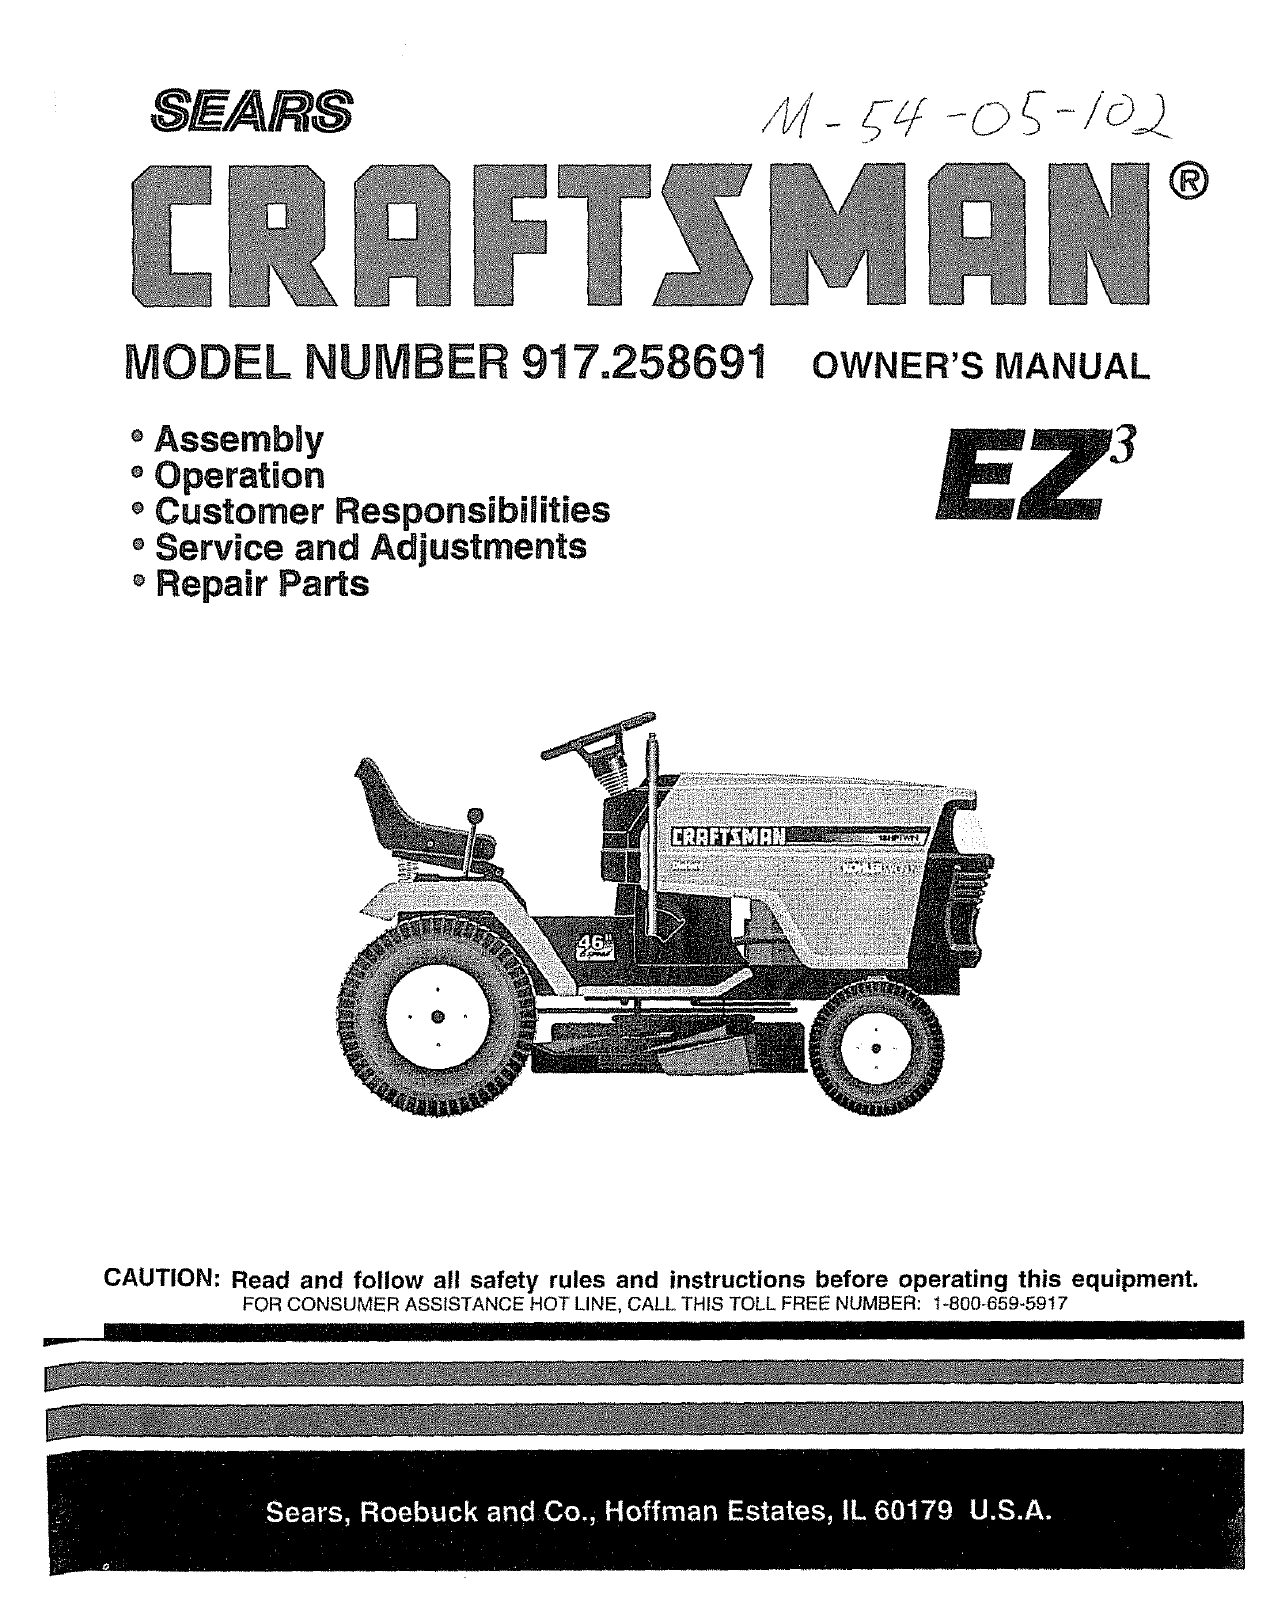 Craftsman 917258691 User Manual Tractor Manuals And Guides L0806170 Wiper Motor Wiring Iains Seven